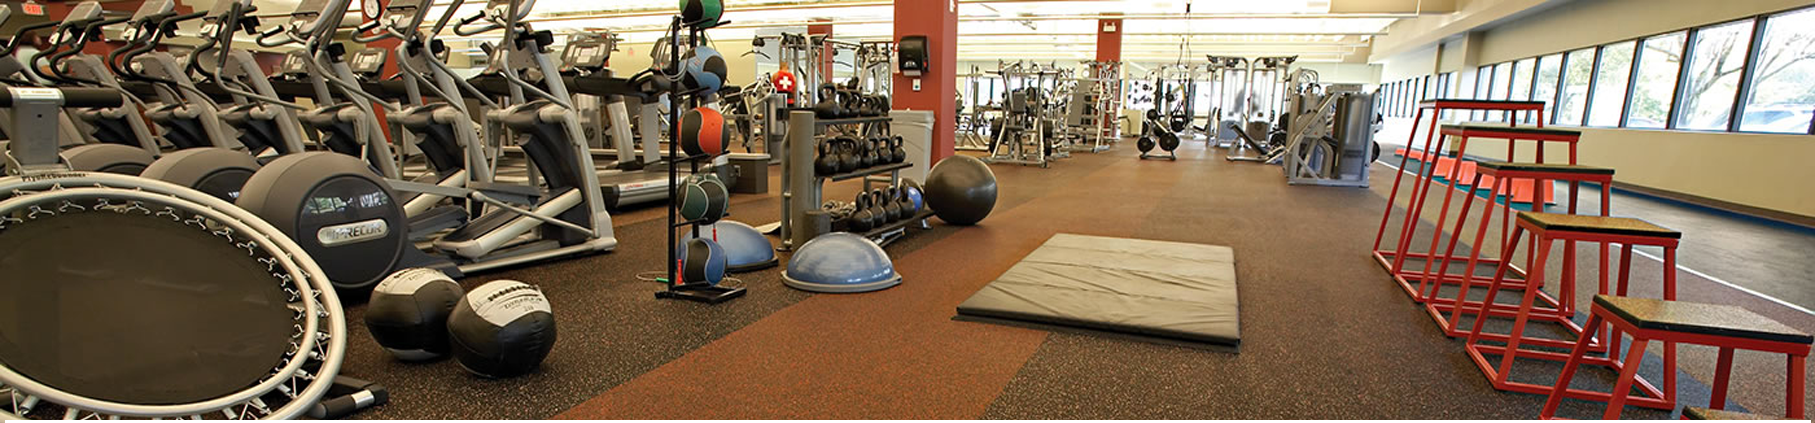 Inside of gym with rolled rubber flooring from Zogics and filled with ellipticals, weights, and lifting machines.